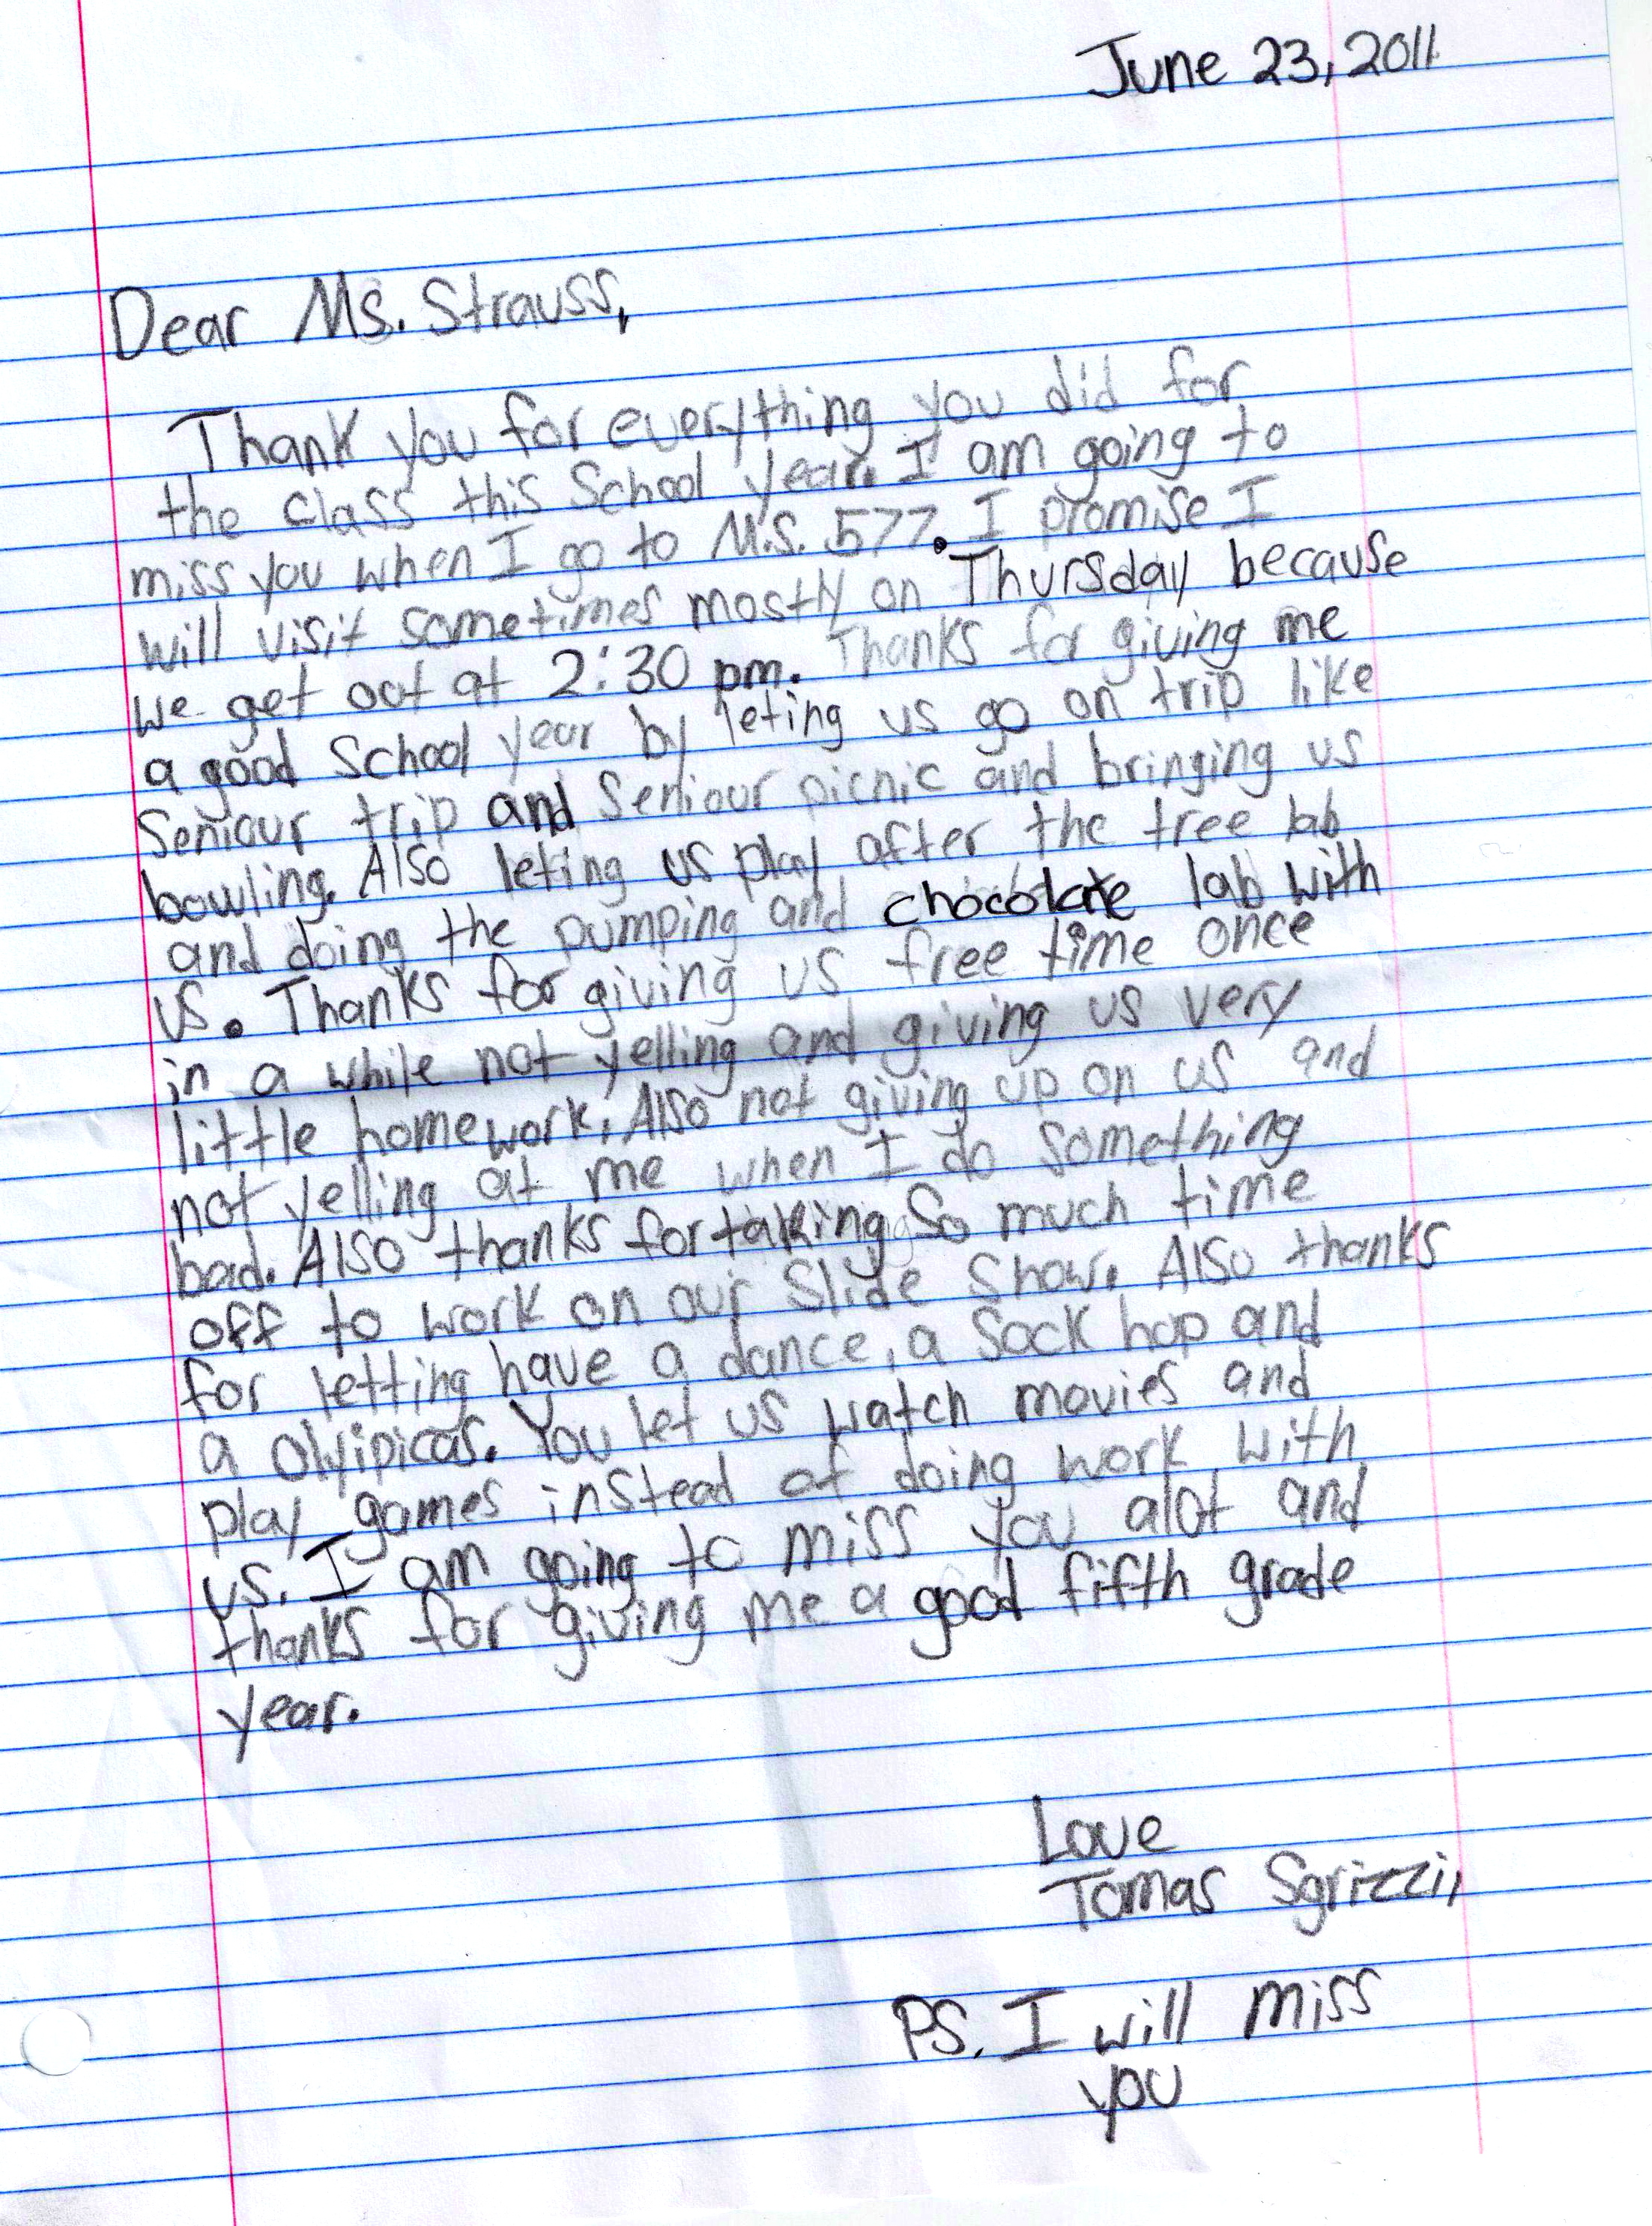 Letters From Kids and Parents  Joanne Strauss